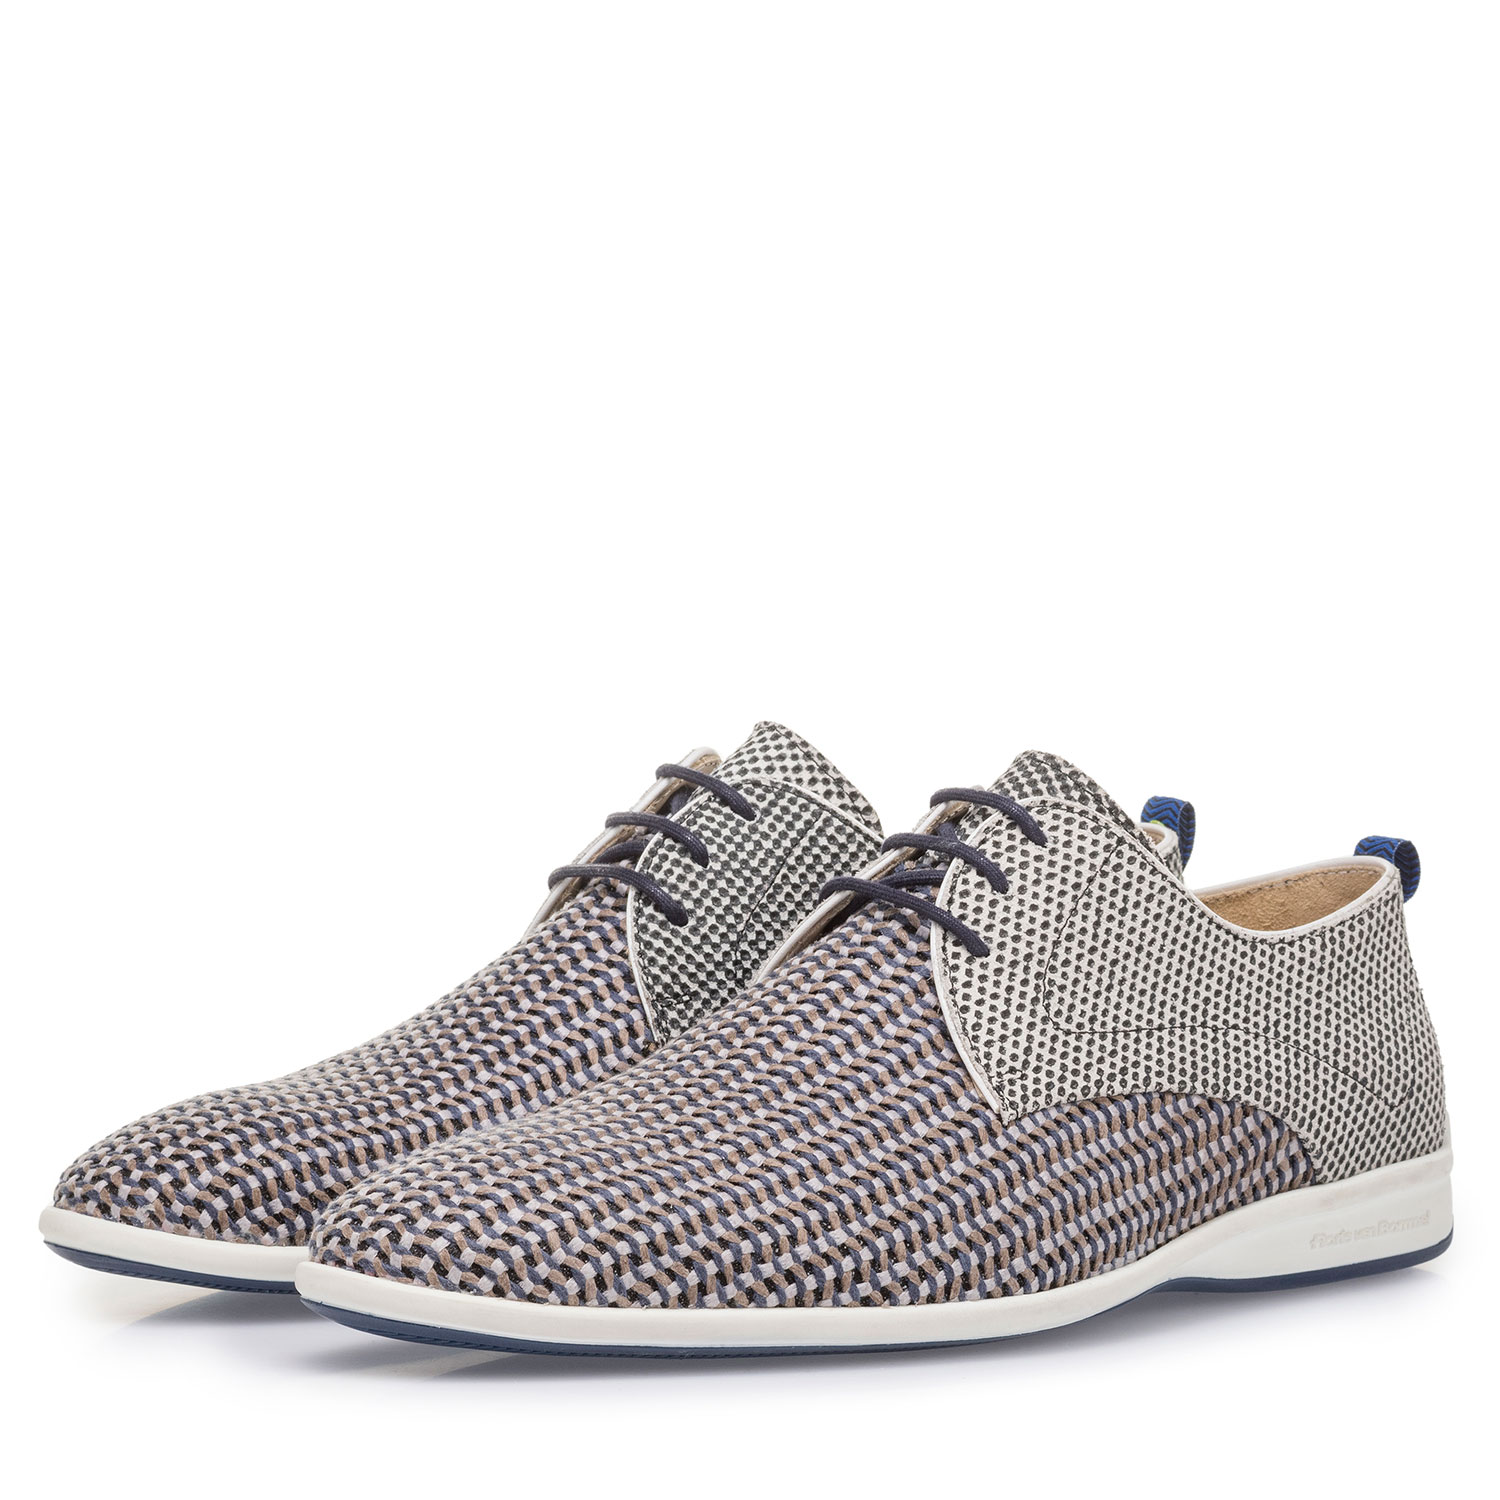 18302/06 - Grey suede leather lace shoe with print